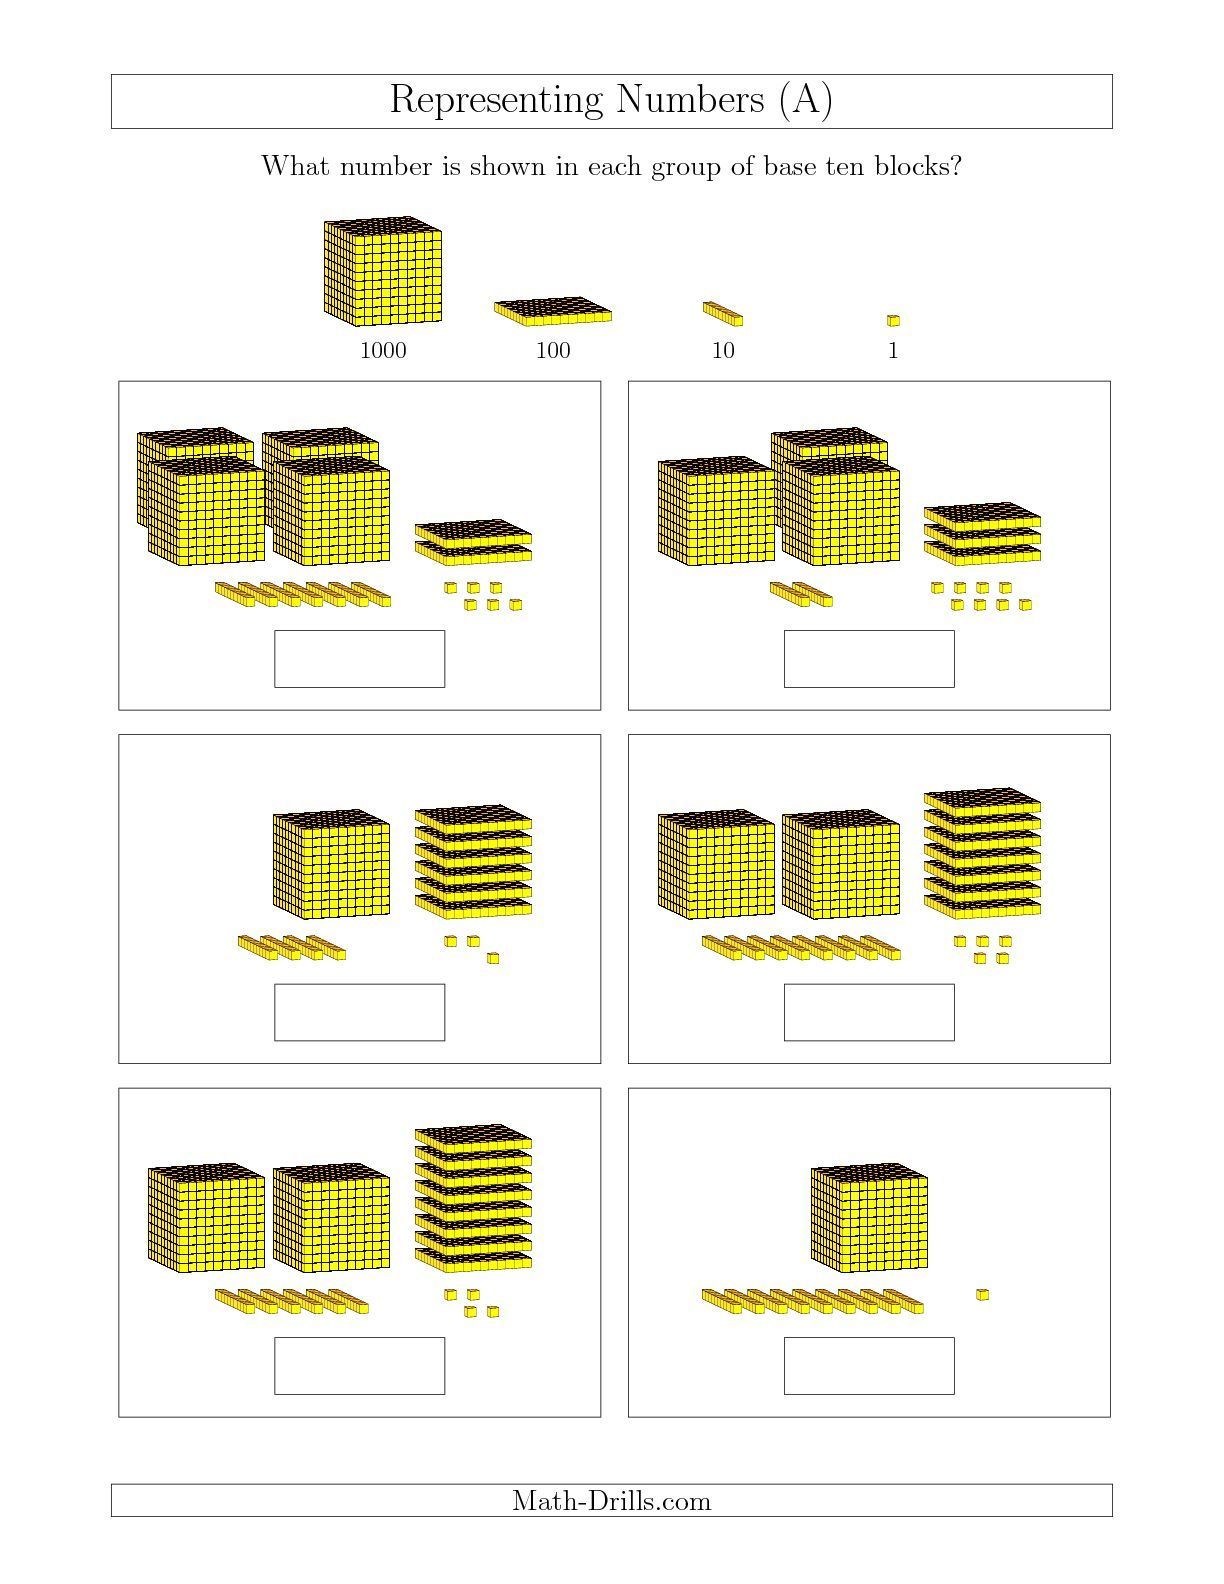 hight resolution of The Representing Numbers to 4999 with Base Ten Blocks (A) math worksheet  from the Base Ten Blocks Worksheet page at Math-D…   Base ten blocks